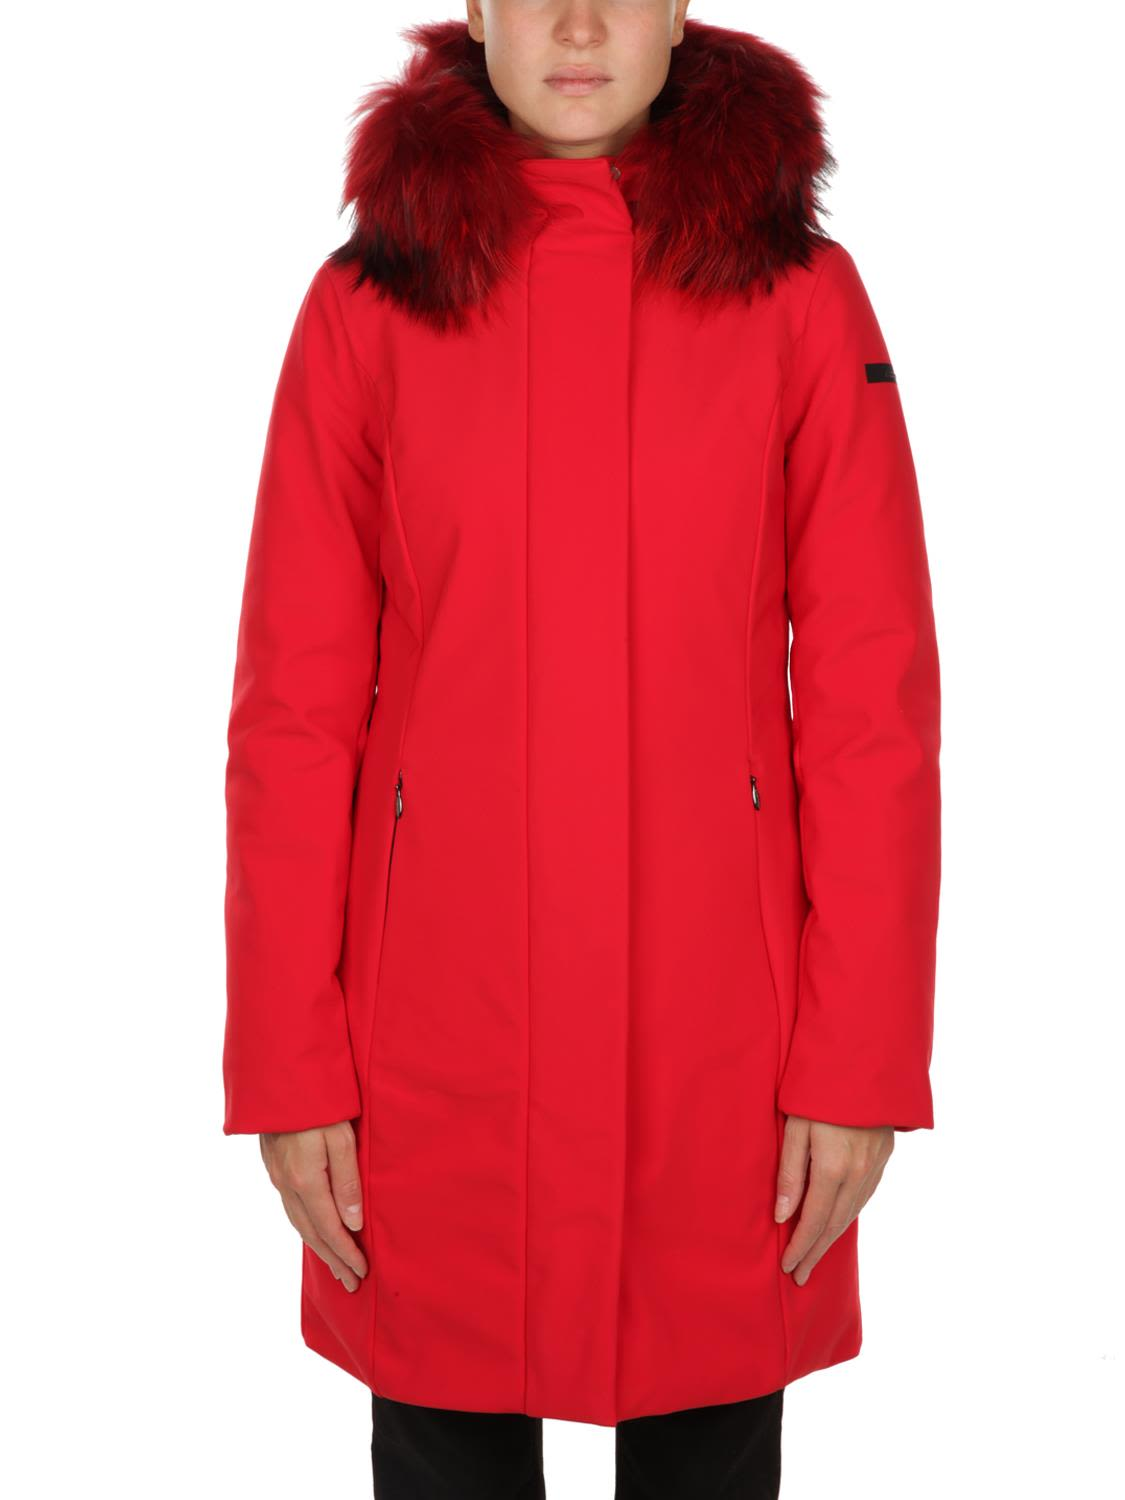 RRD - ROBERTO RICCI DESIGN Hooded Jacket in Red